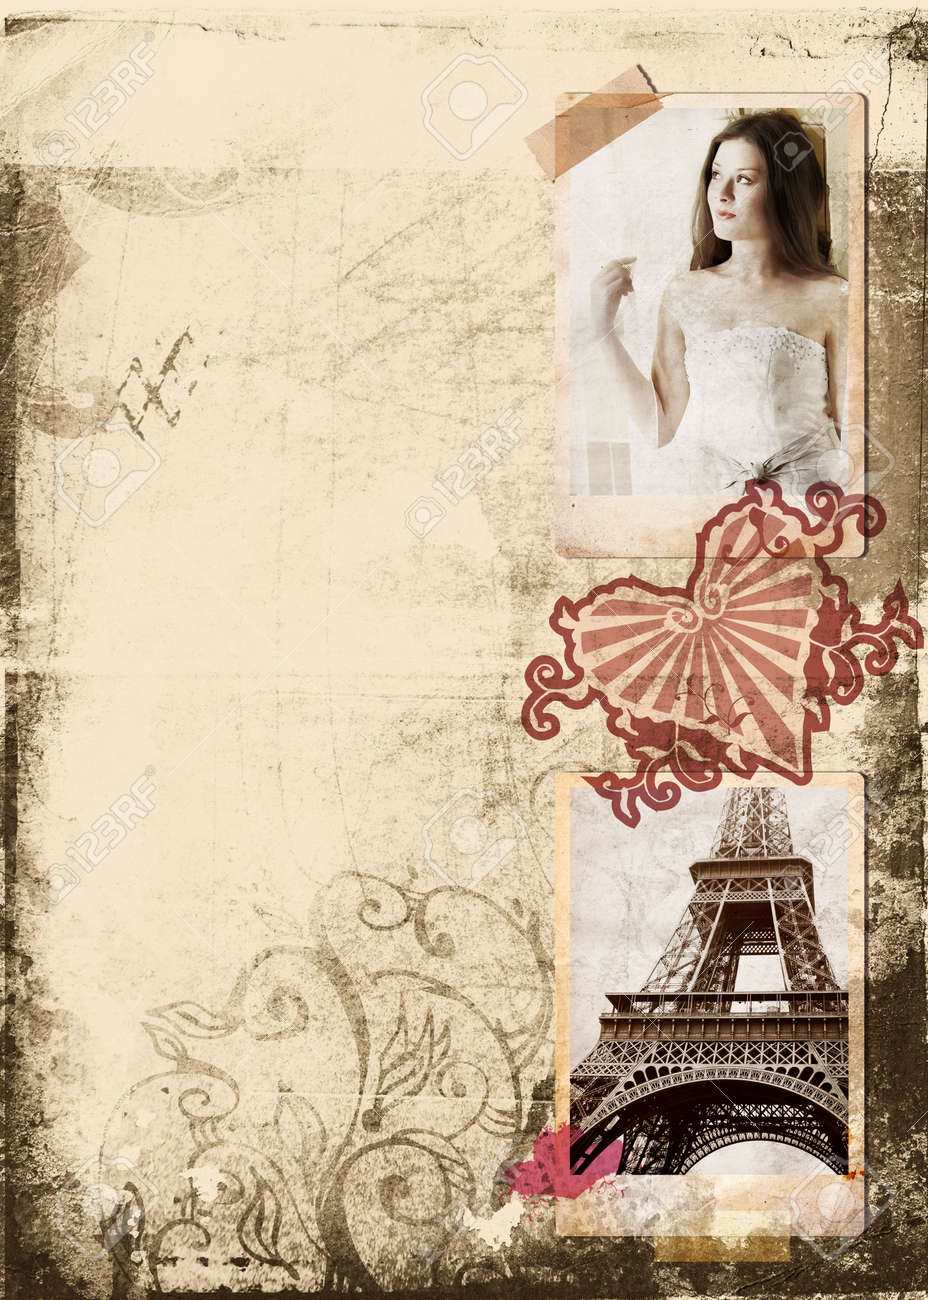 Grunge album page with vintage photos of beautiful bride and Eiffel Tower, heart seal Stock Photo - 2593069